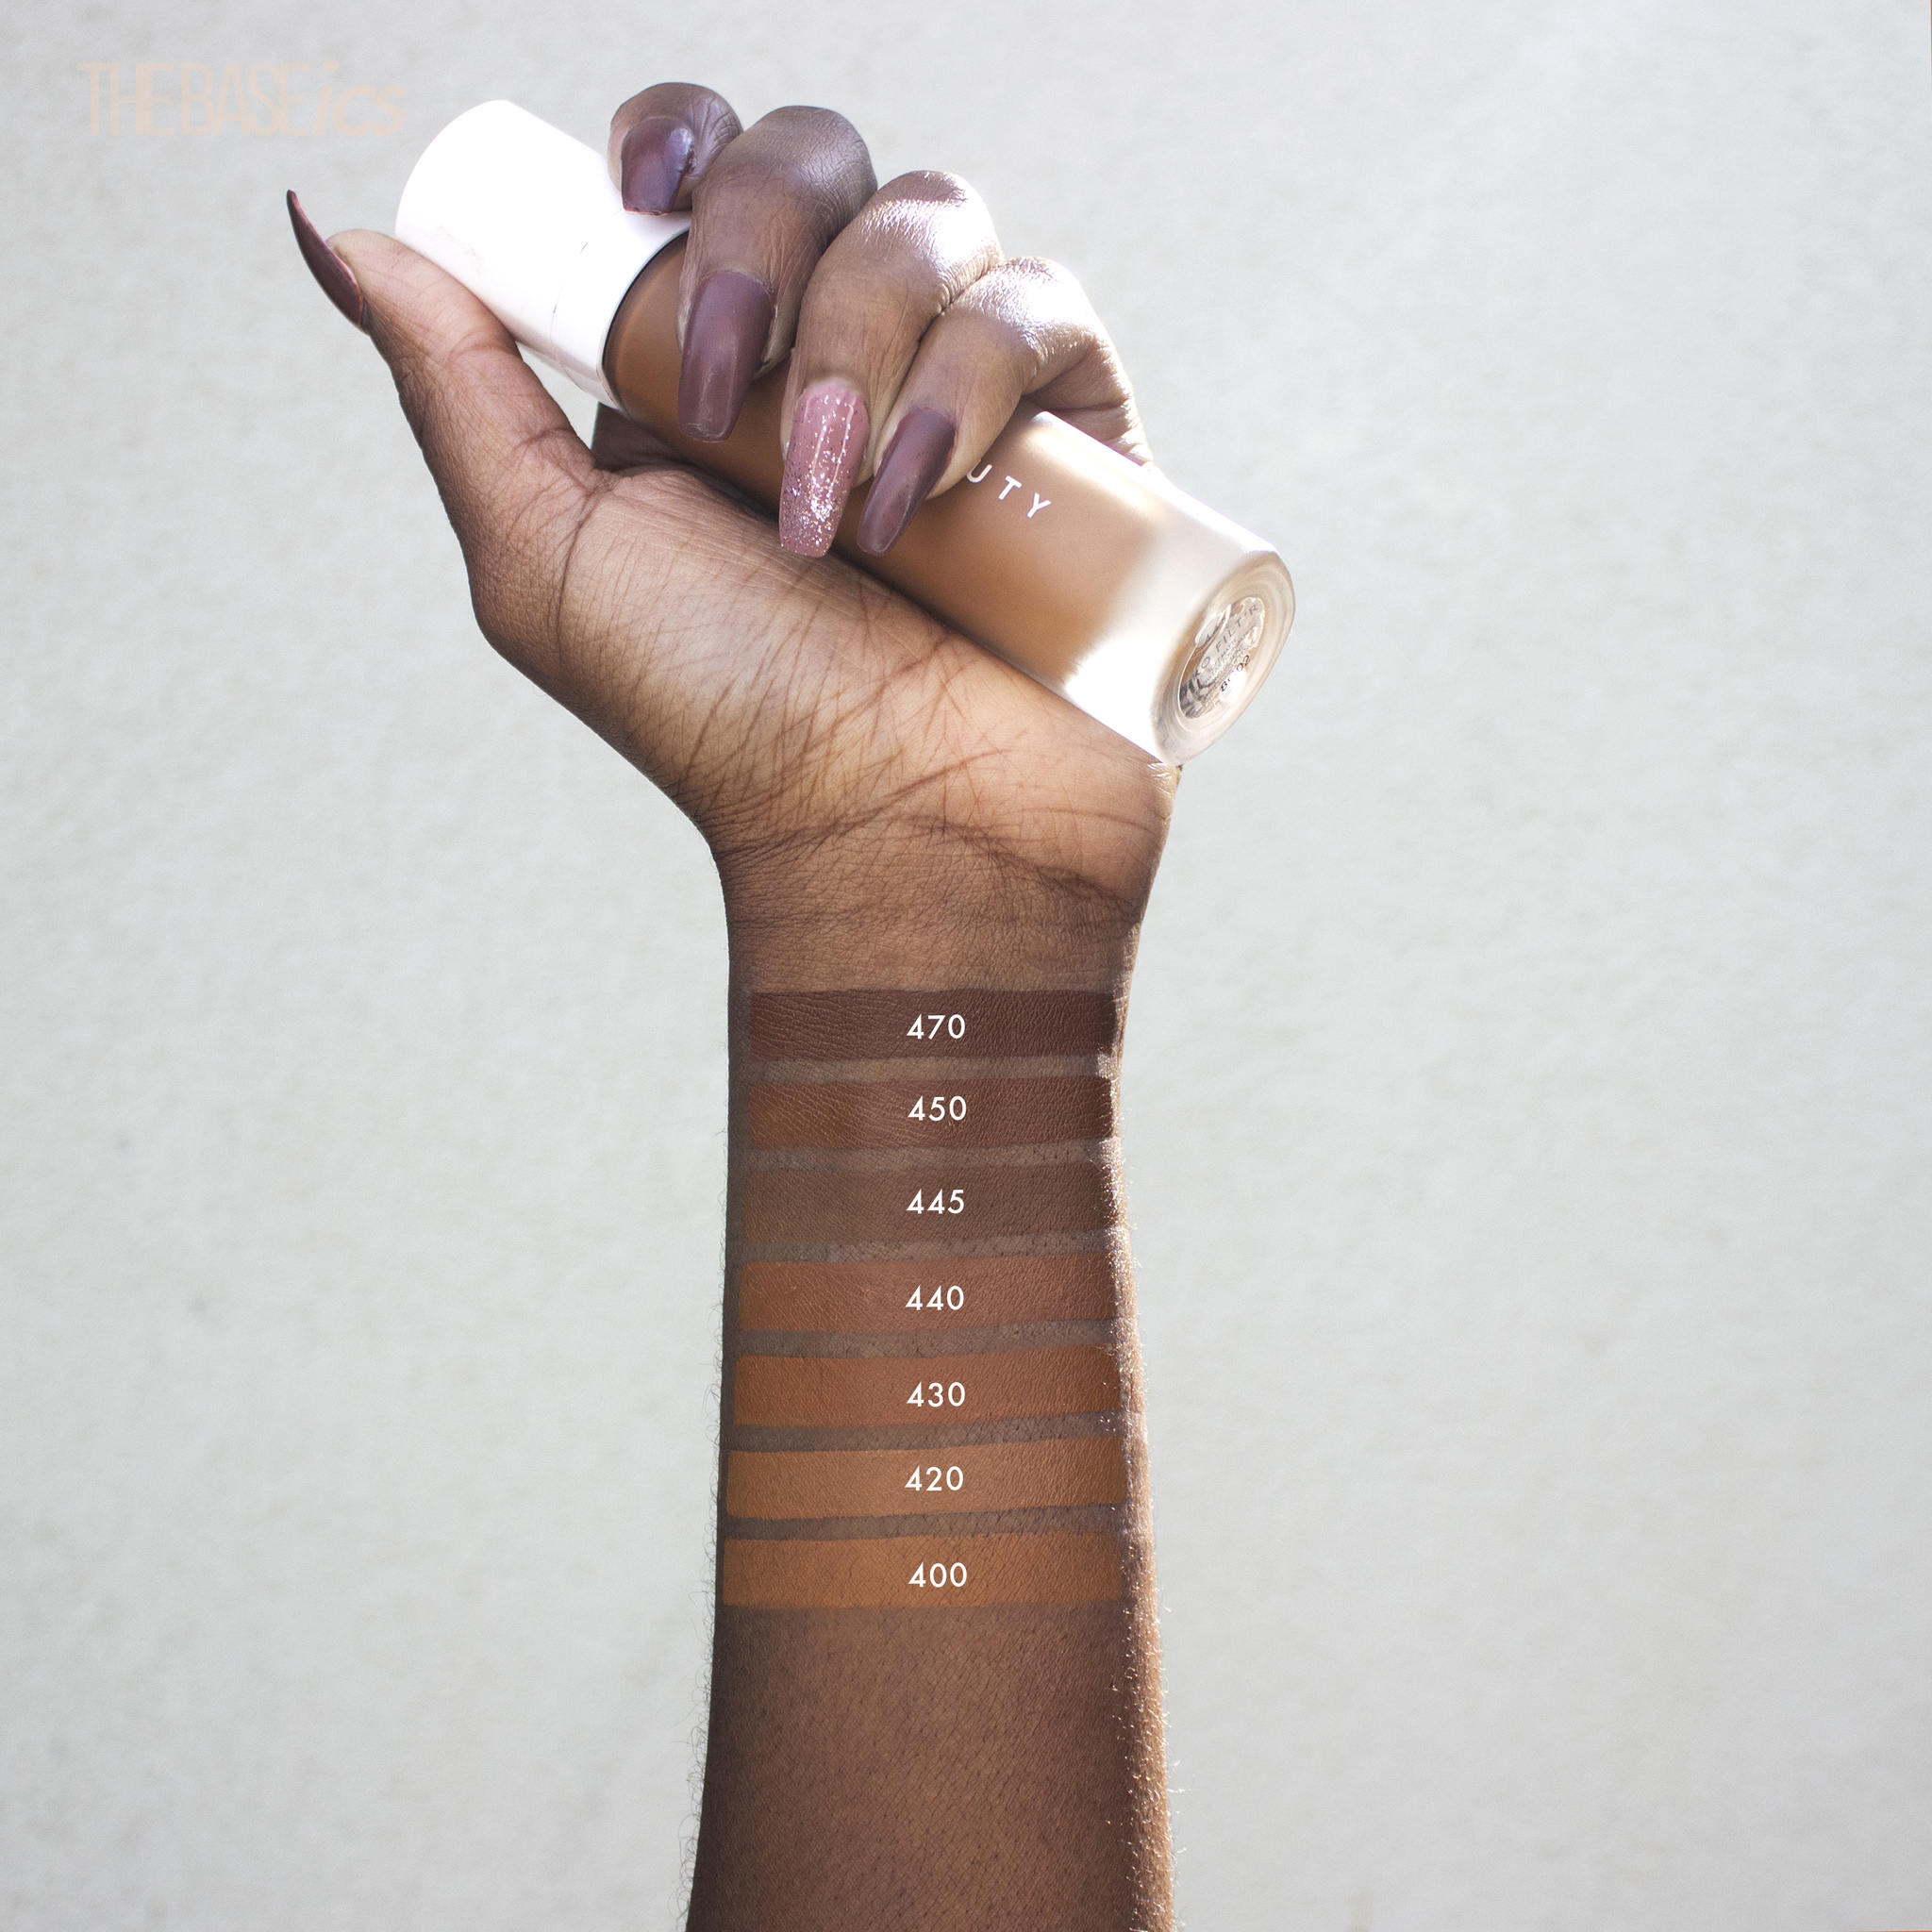 Fenty Beauty Pro Filt R Soft Matte Longwear Foundation The Baseics